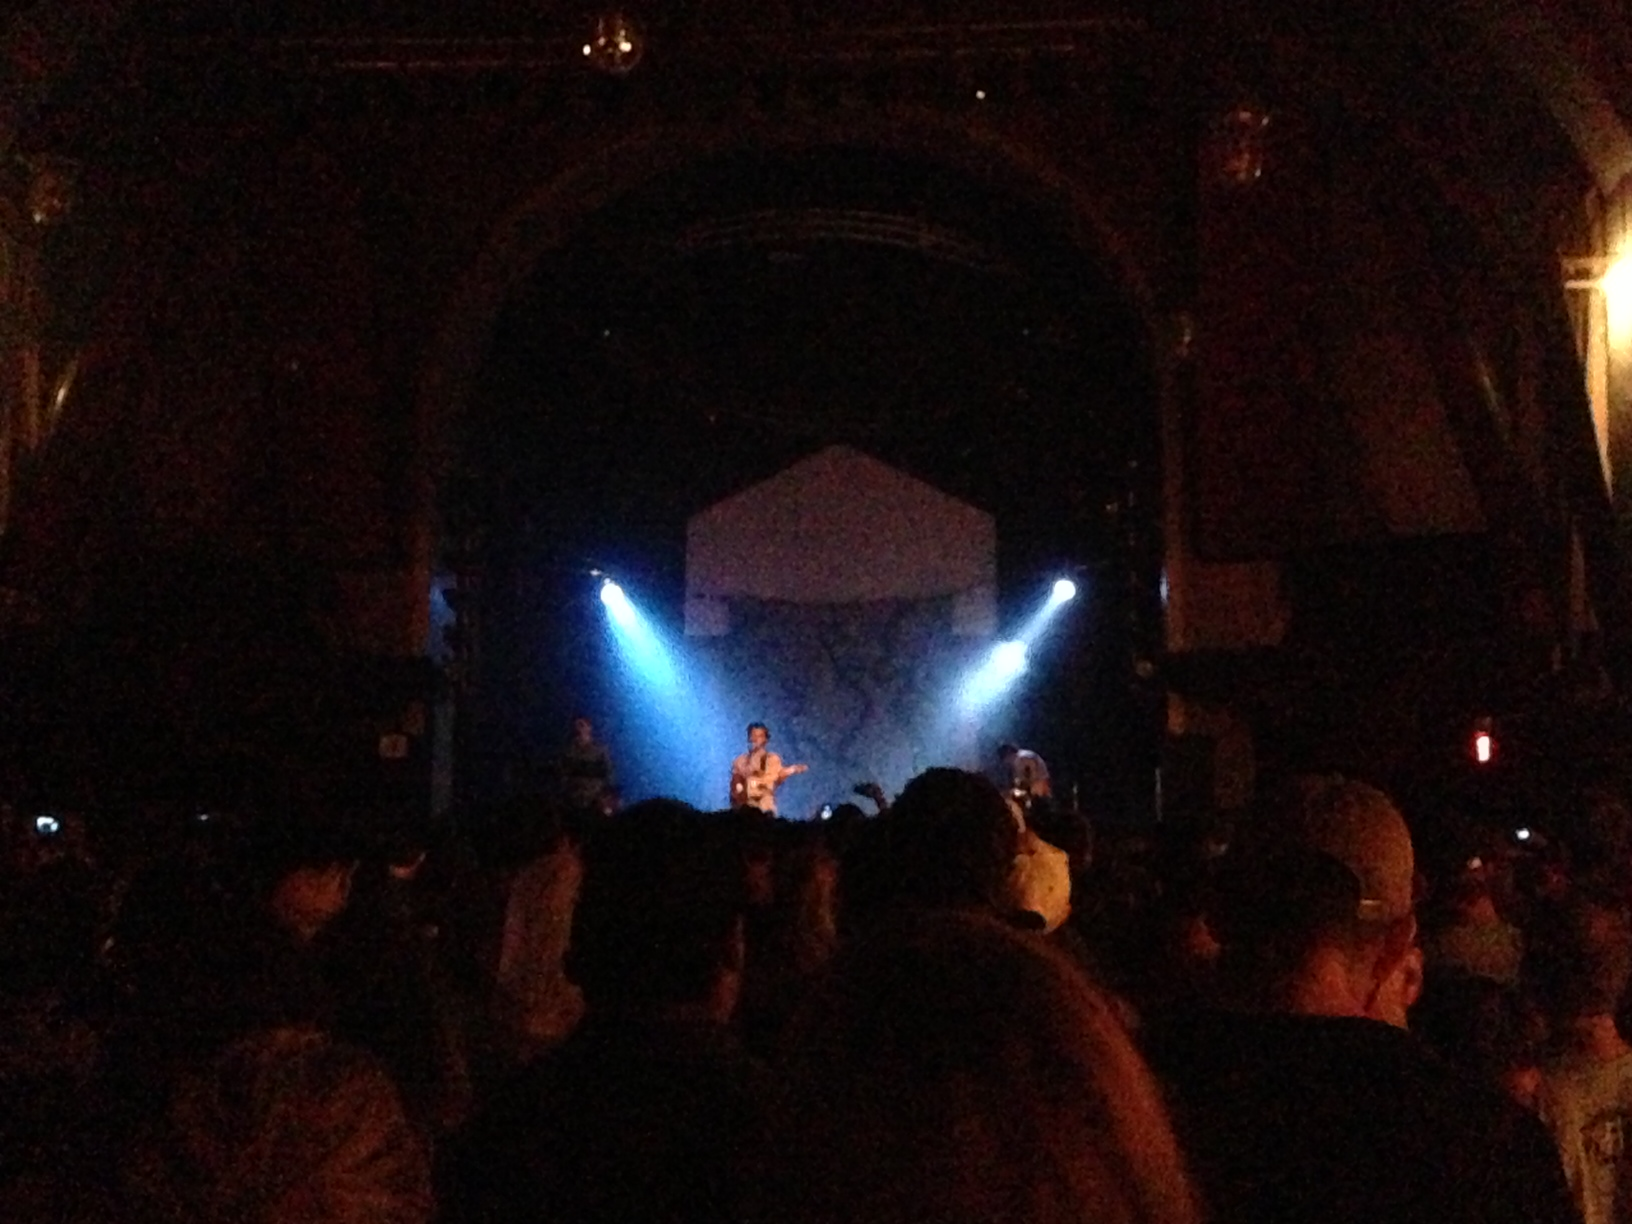 Alt-J at Mr. Smalls 6/10/13